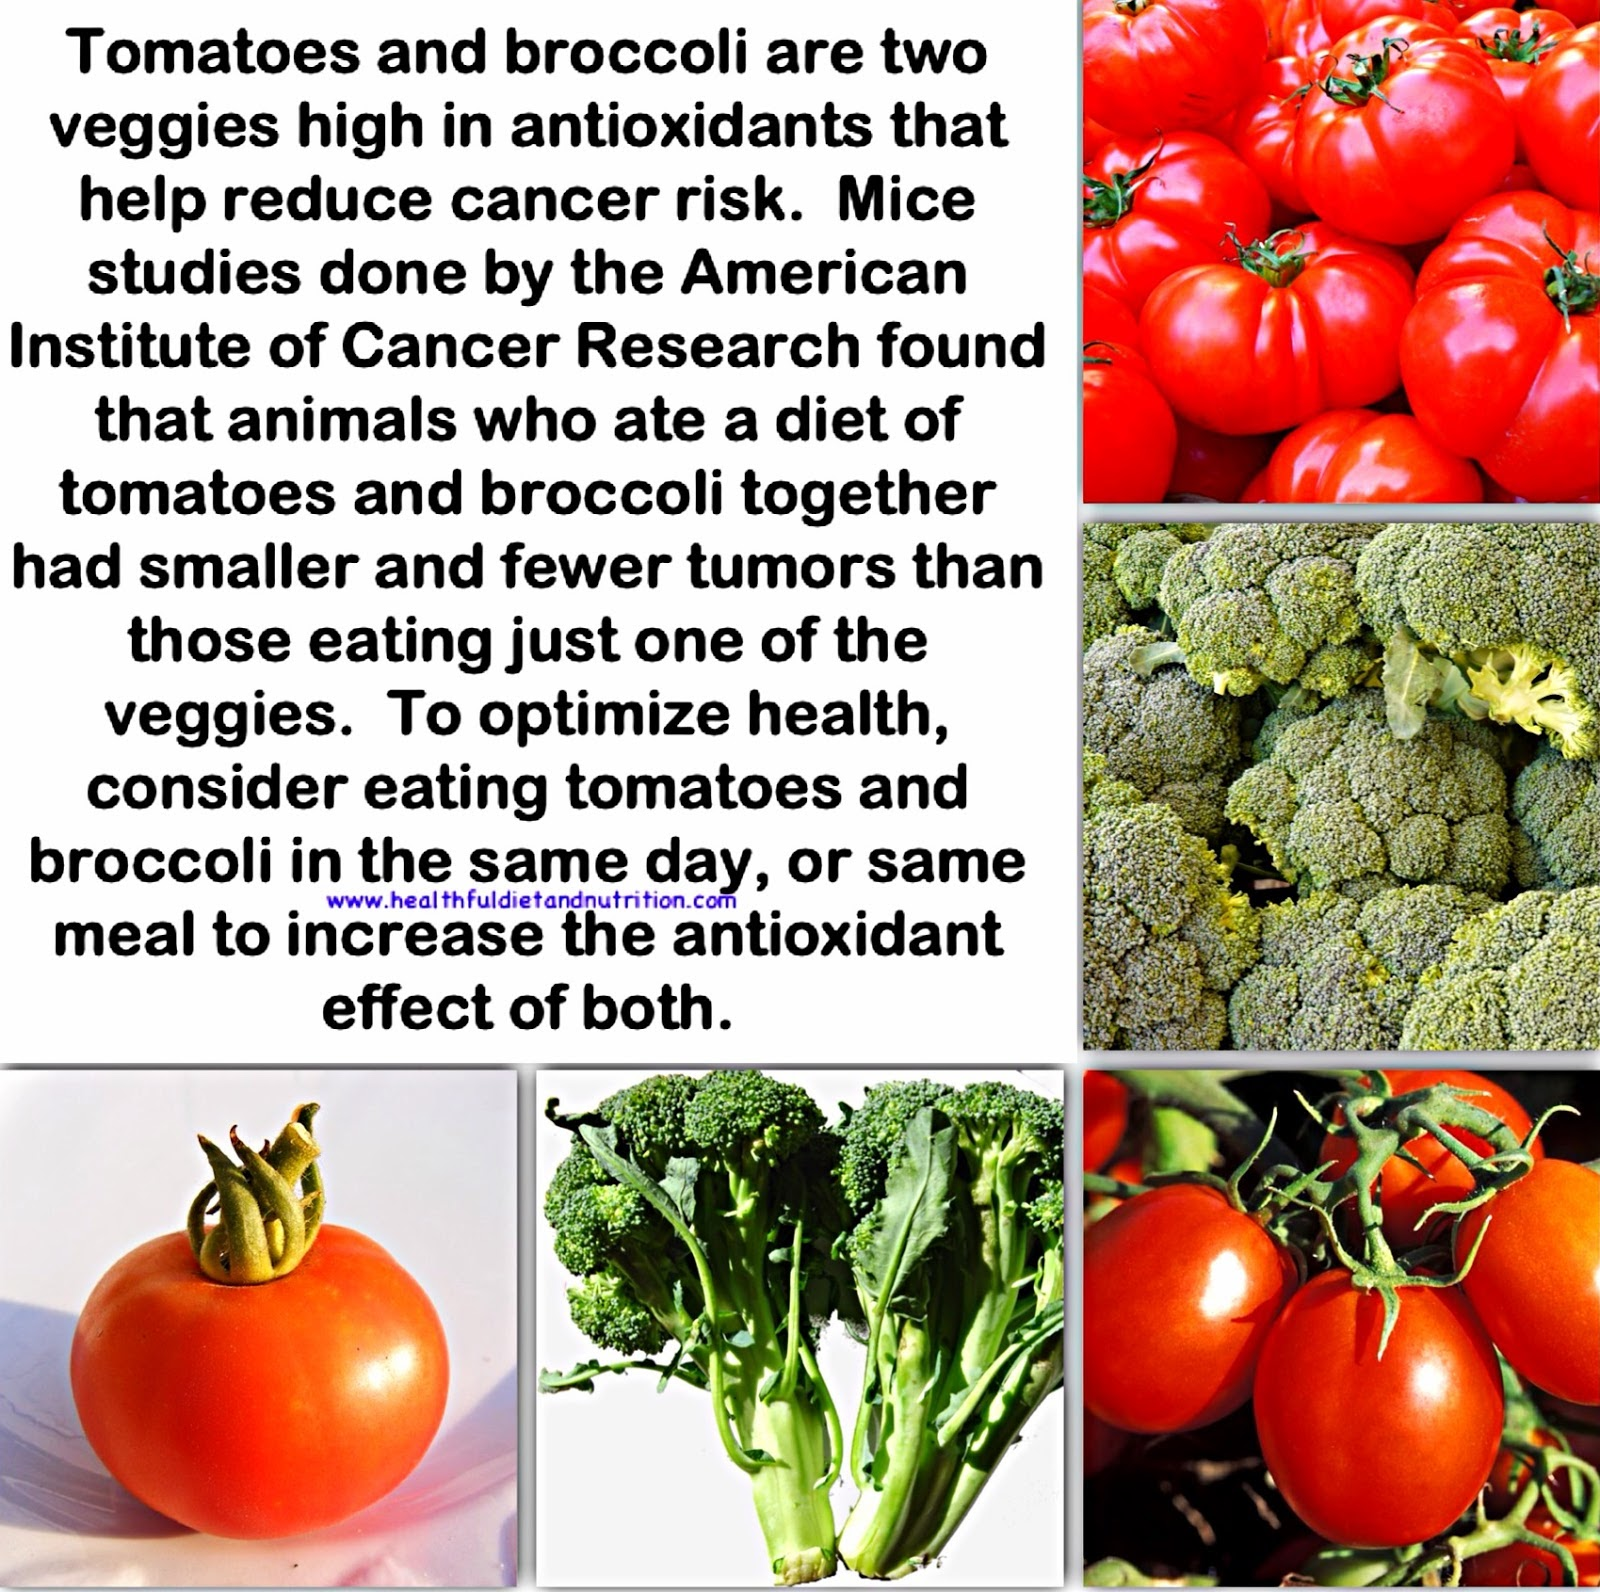 Eat Tomato and Broccoli in the same Meal